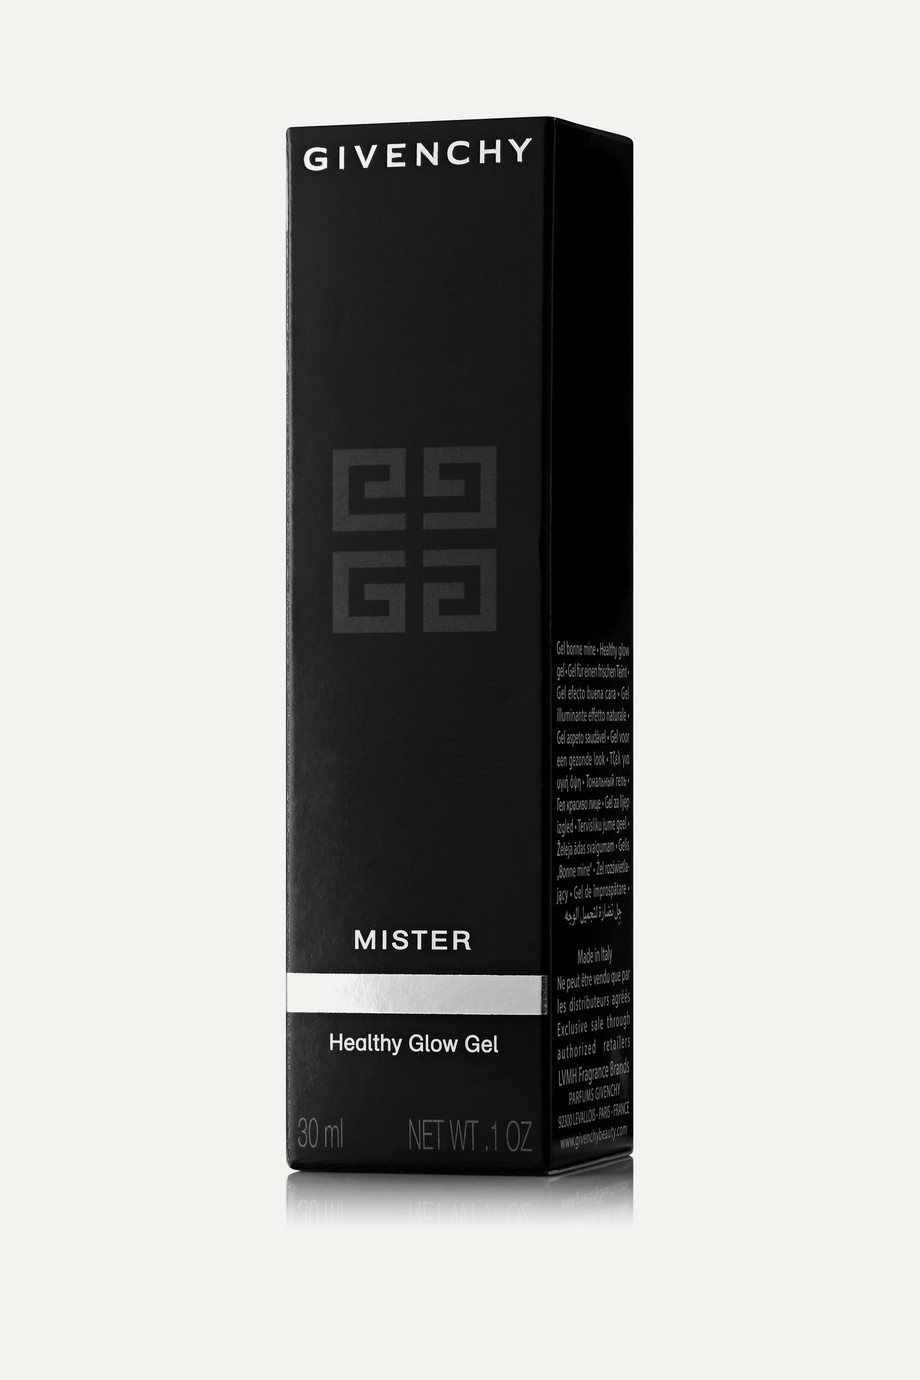 Givenchy Beauty Mister Healthy Glow Gel - Universal Tan 00, 30ml